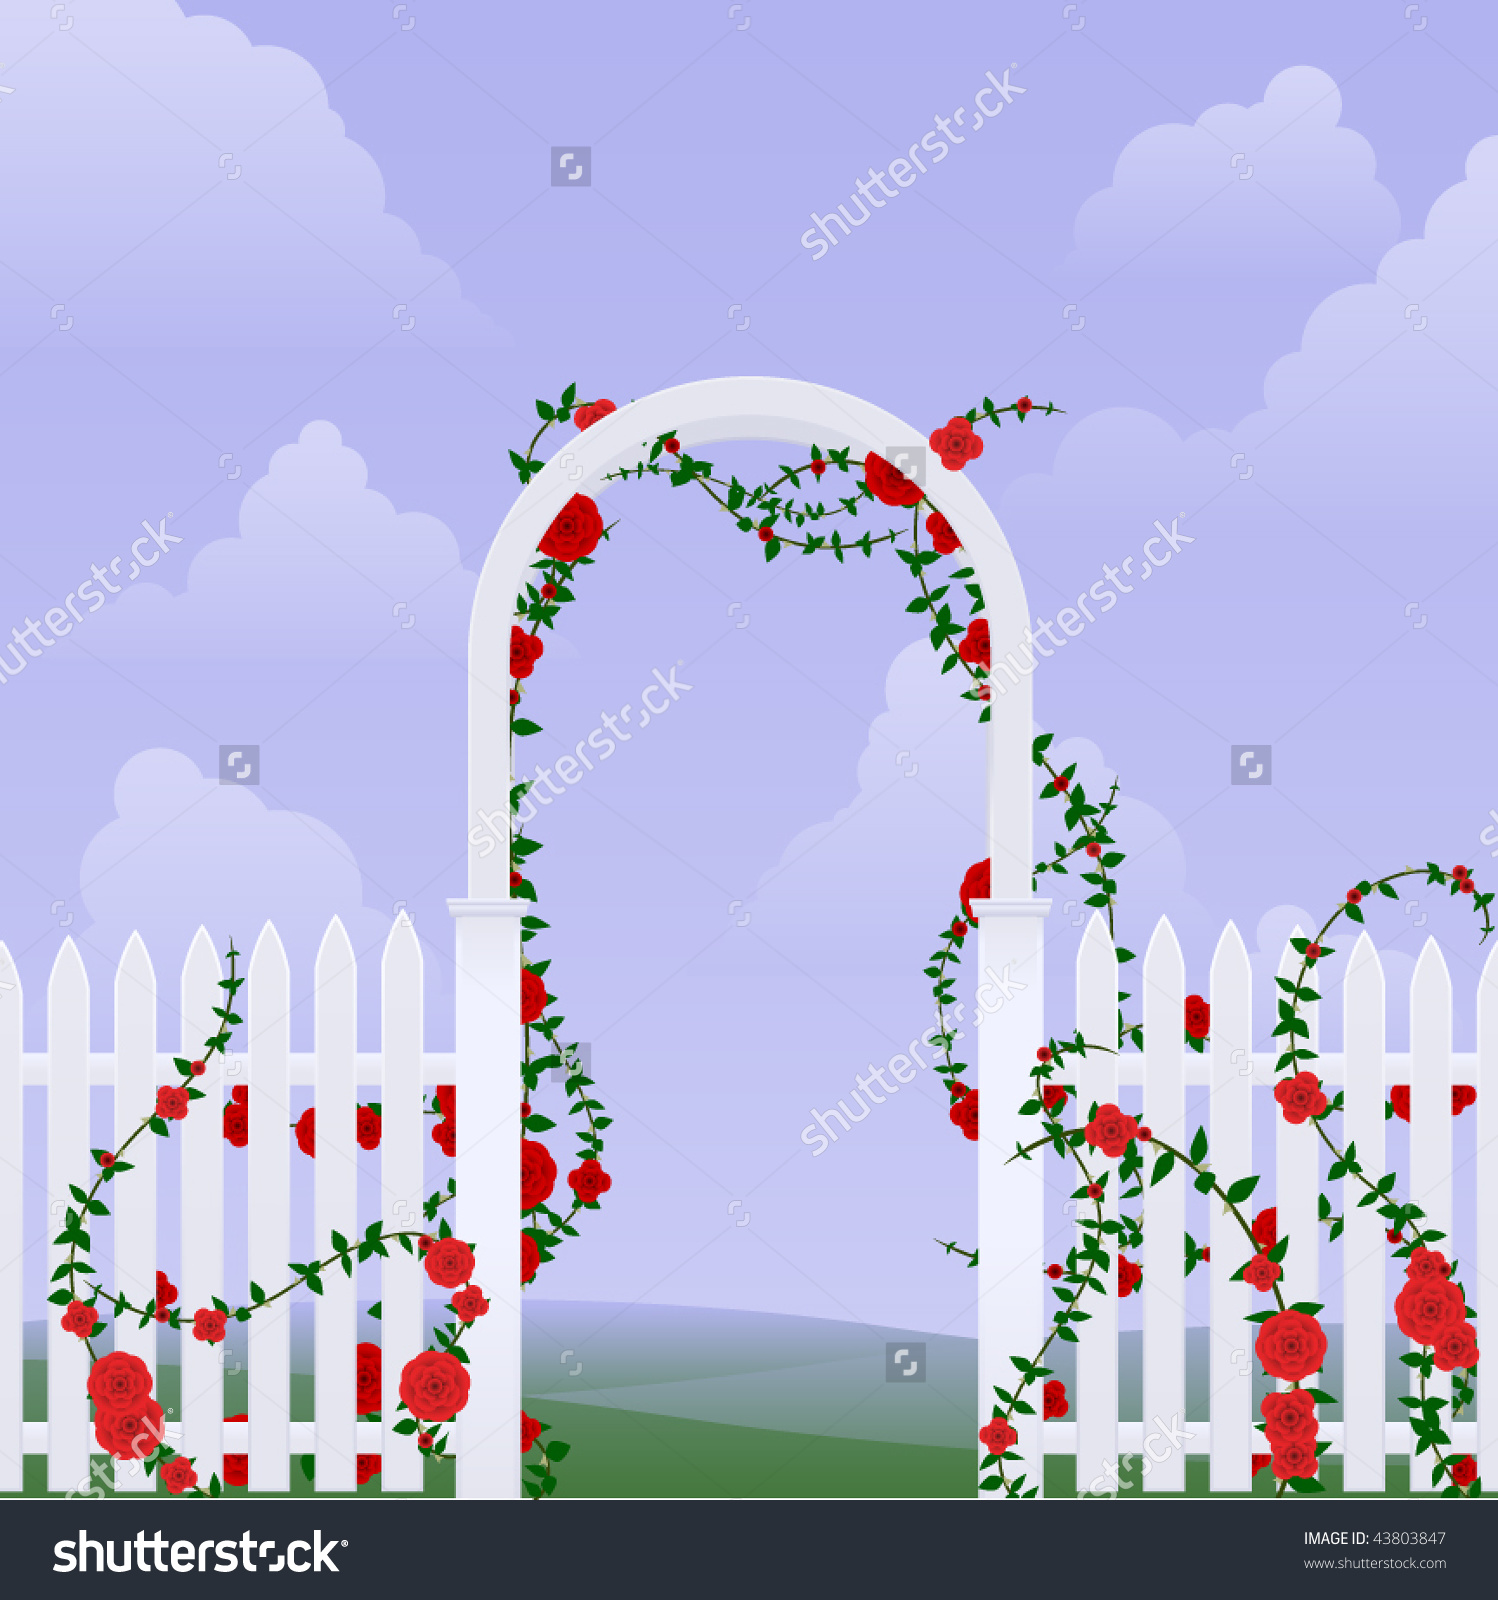 Simple Arbor With Climbing Roses Against A Sky Stock Vector.